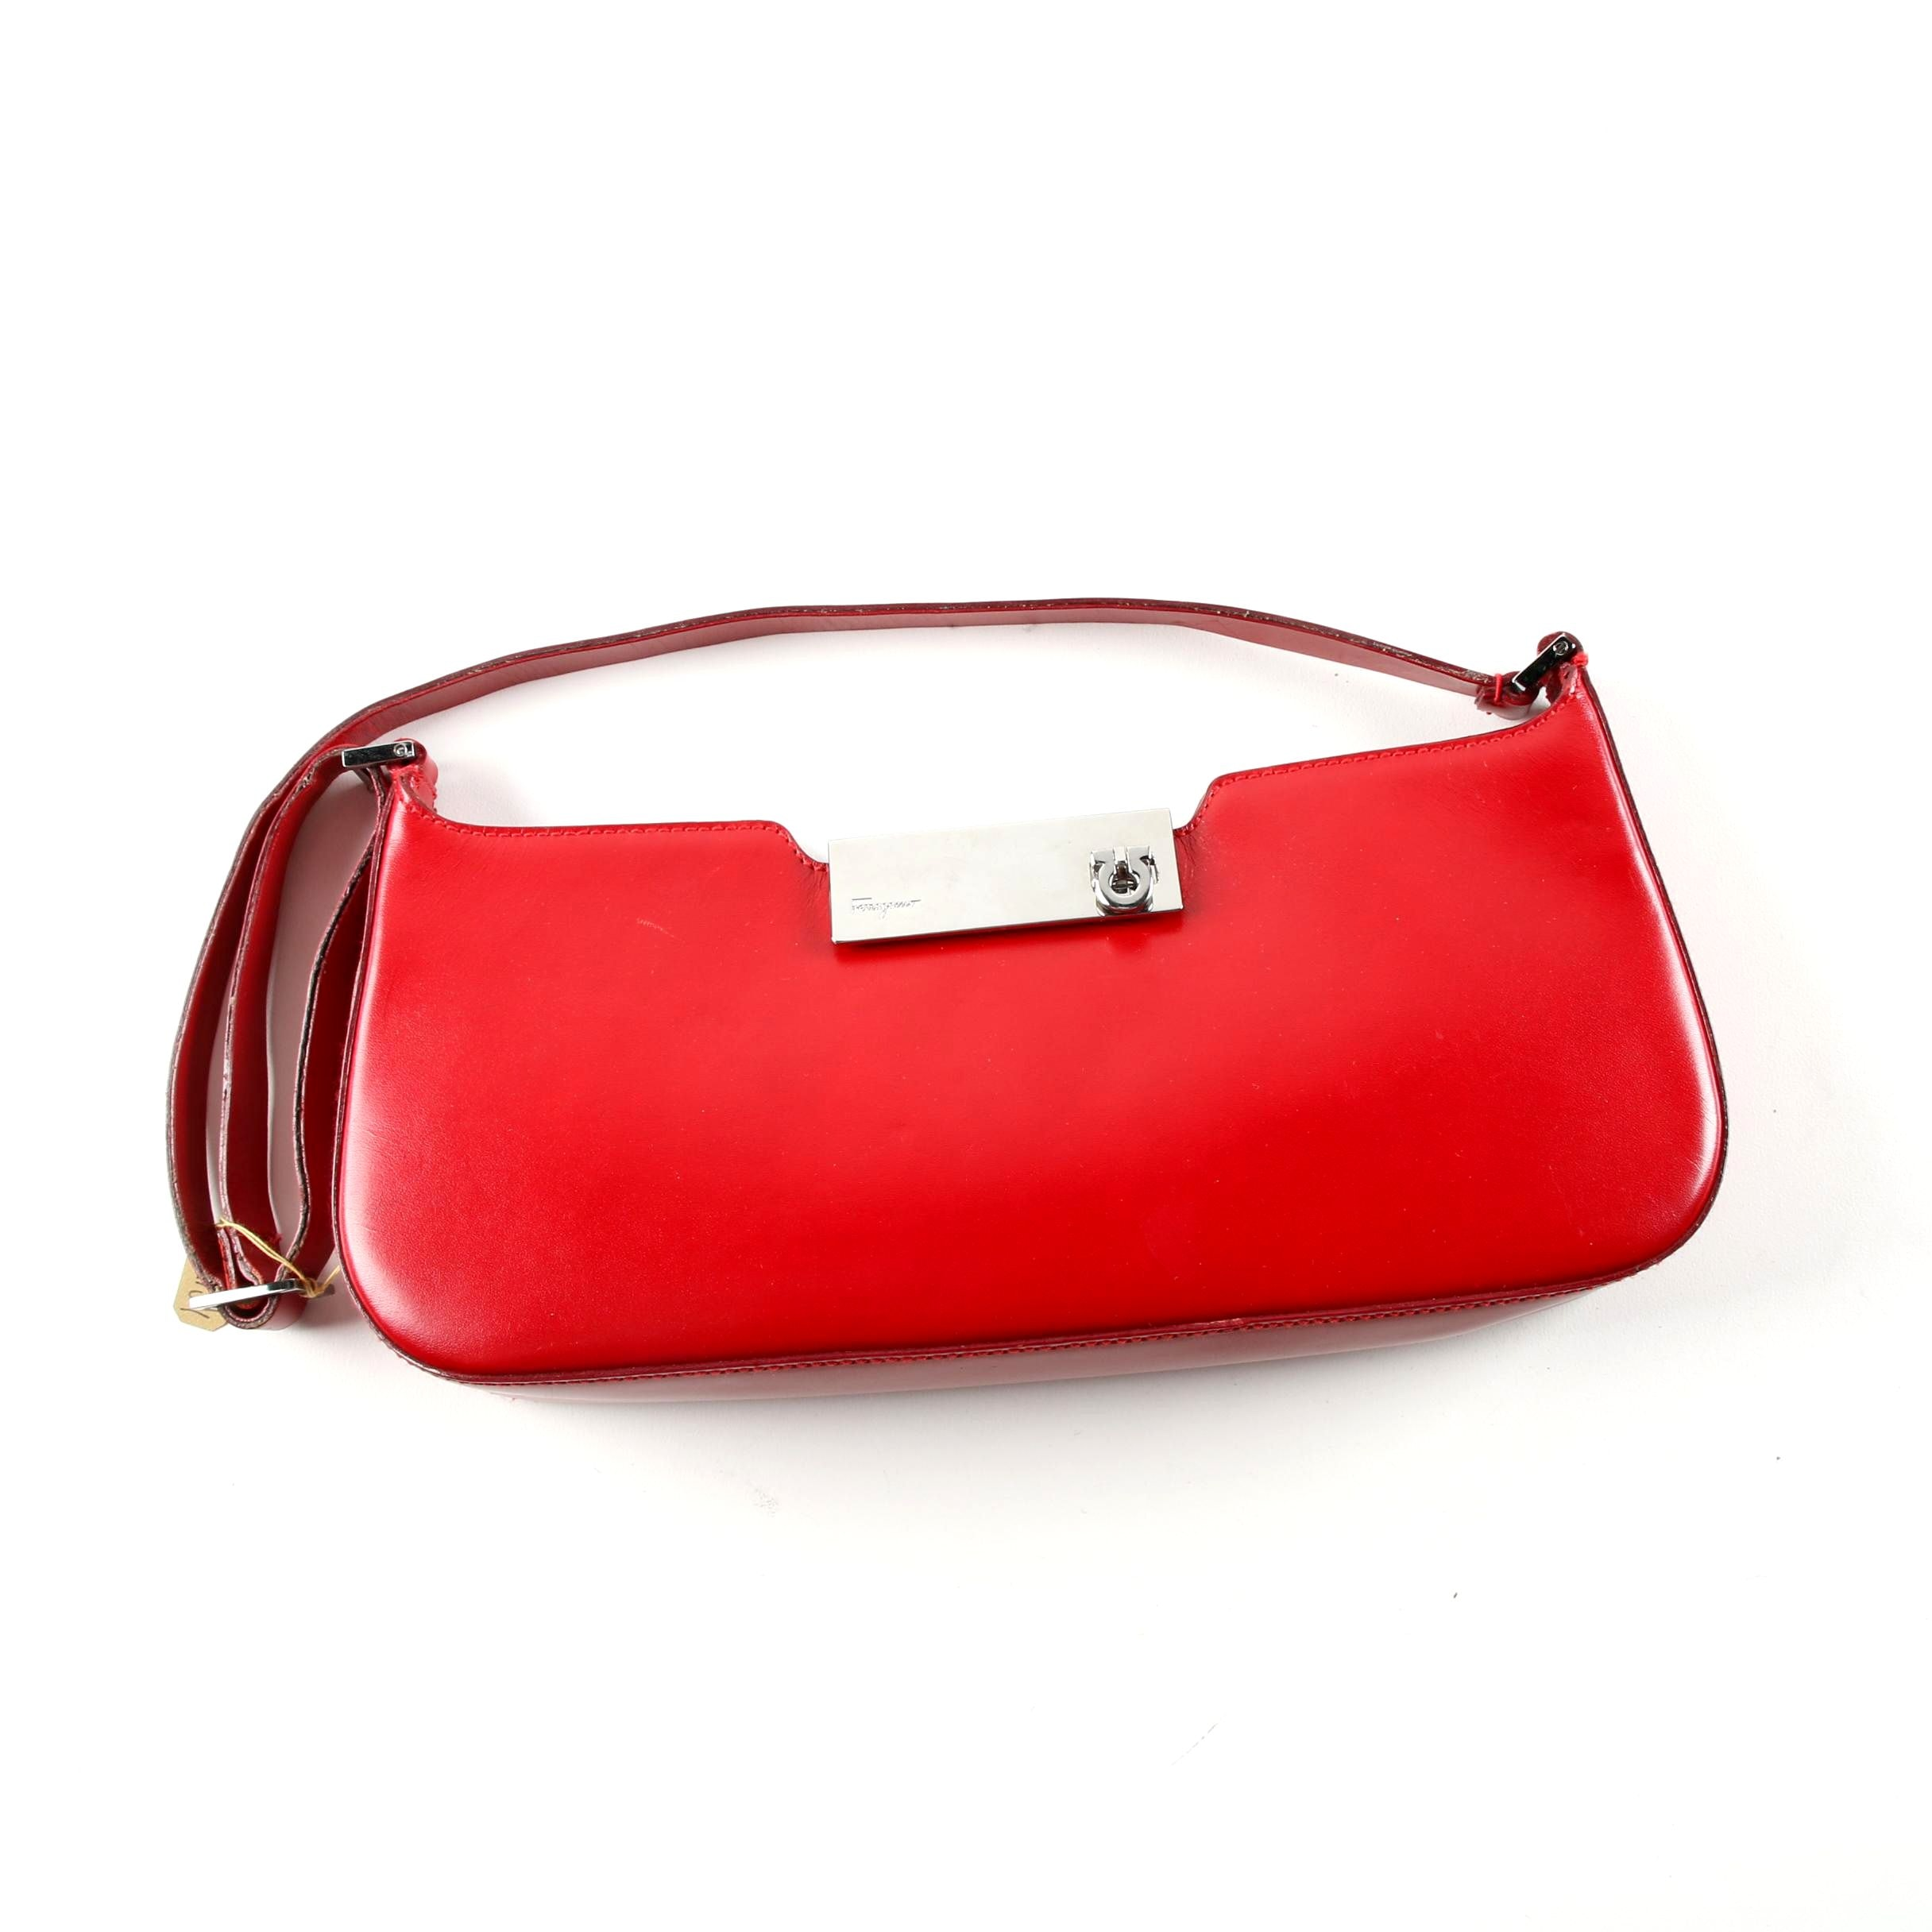 Salvatore Ferragamo Red Leather Handbag